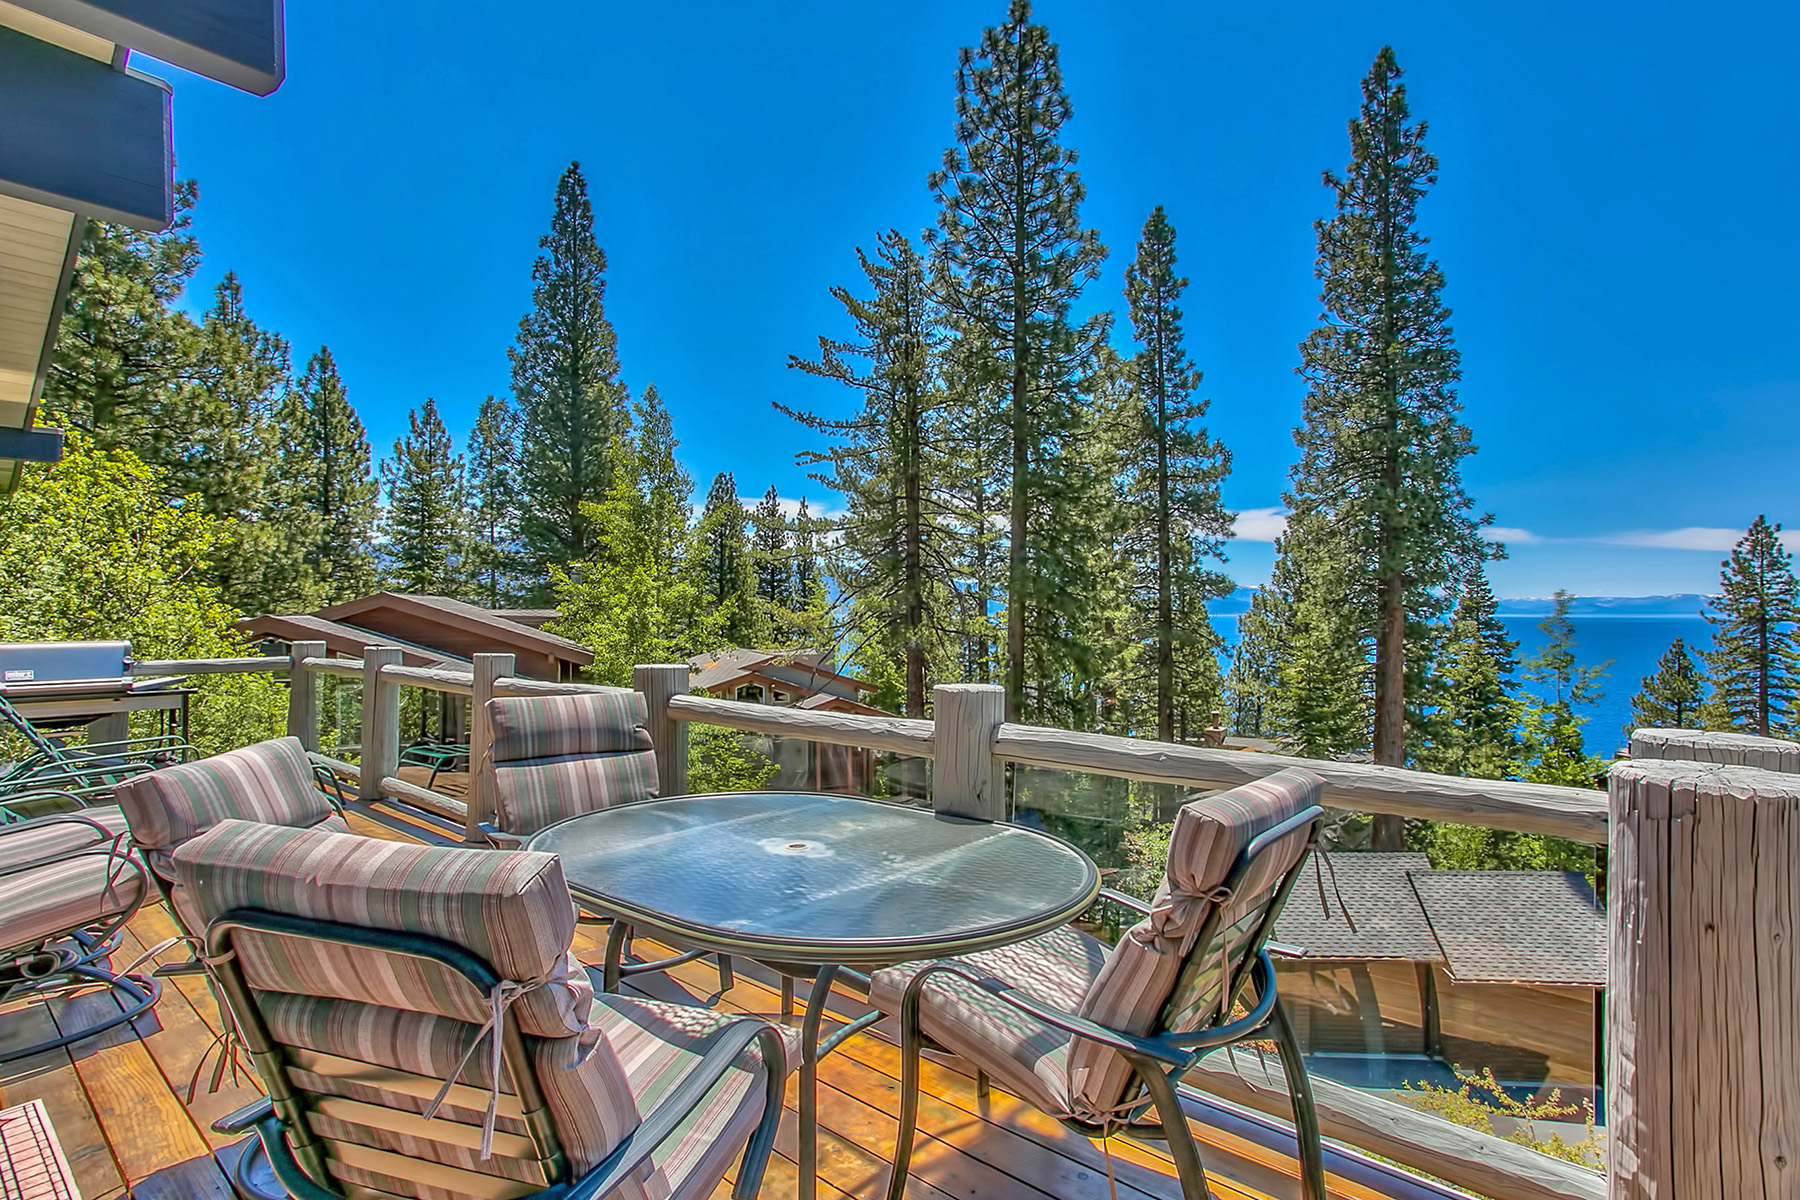 Townhouse for Sale at 101 Red Cedar Drive #14 Ponderosa, Incline Village, Nevada 89451 United States